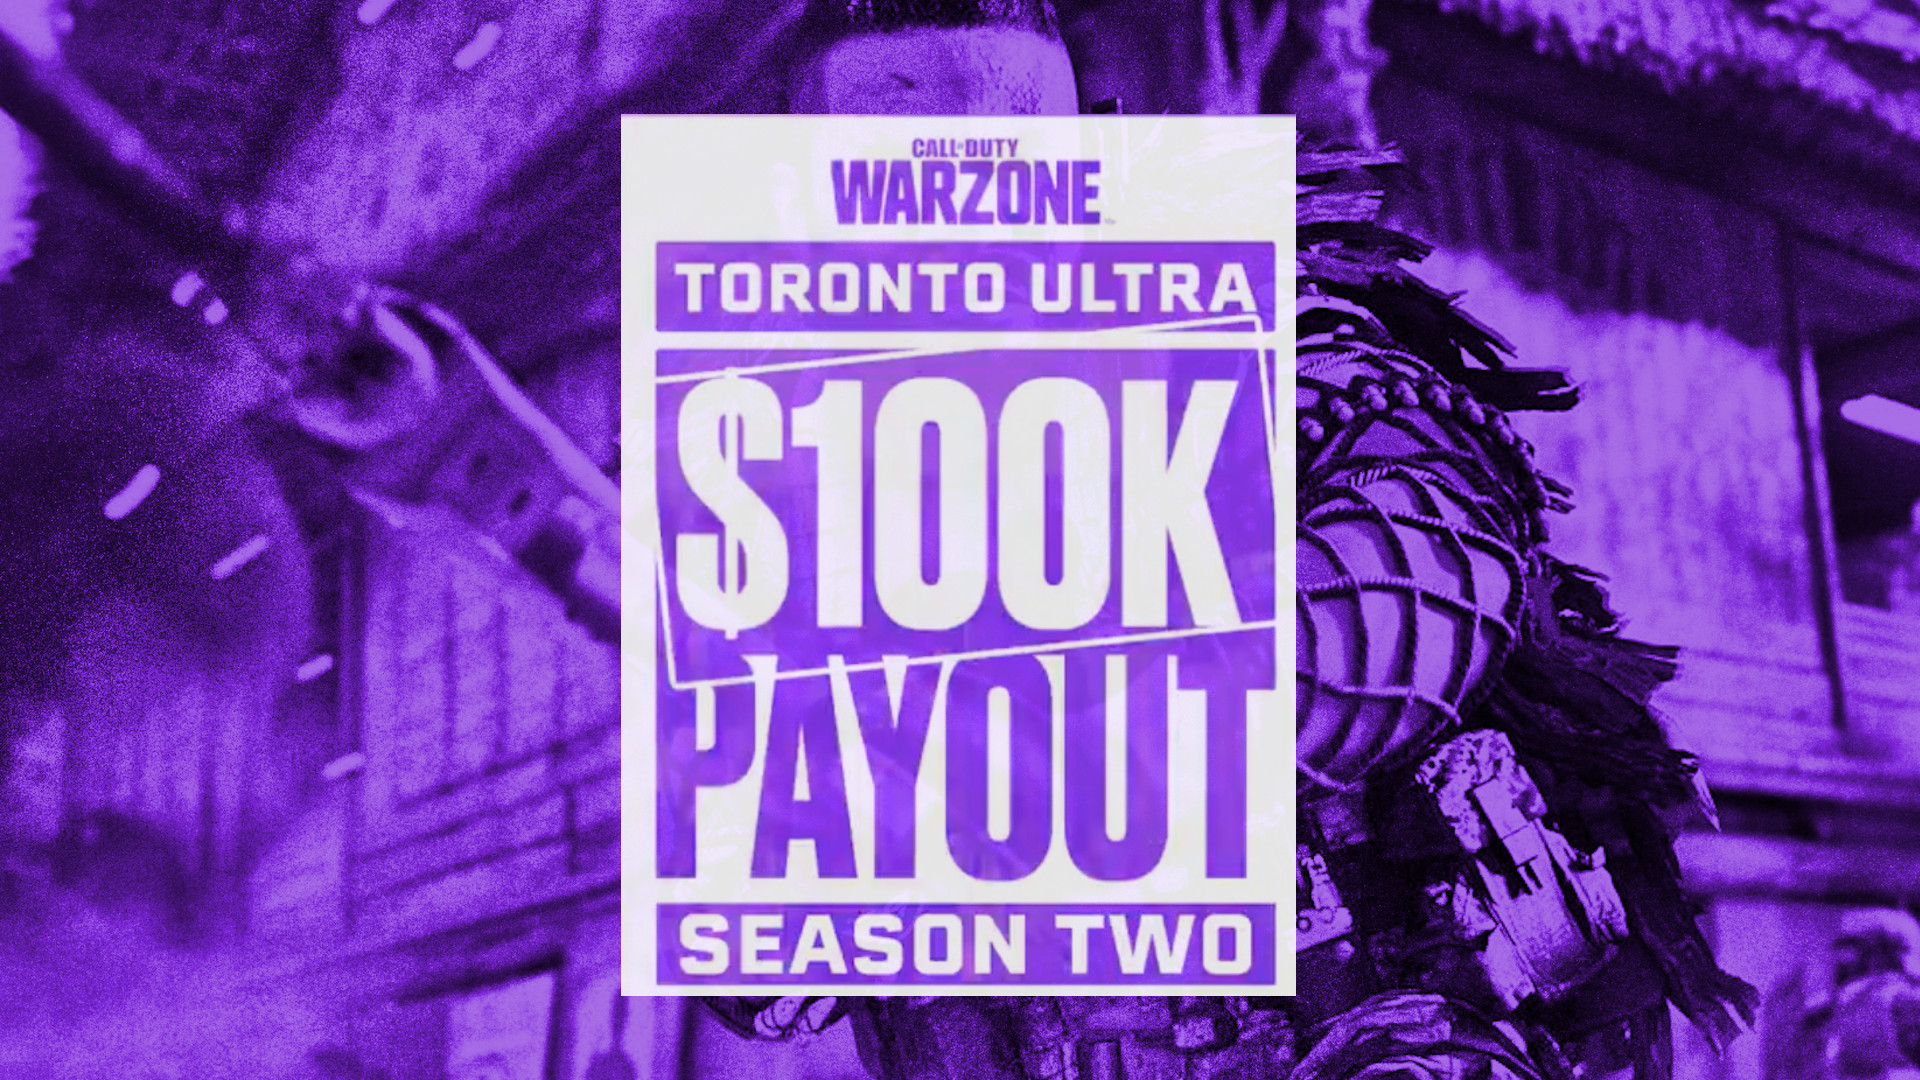 toronto ultra warzone tournament season 2